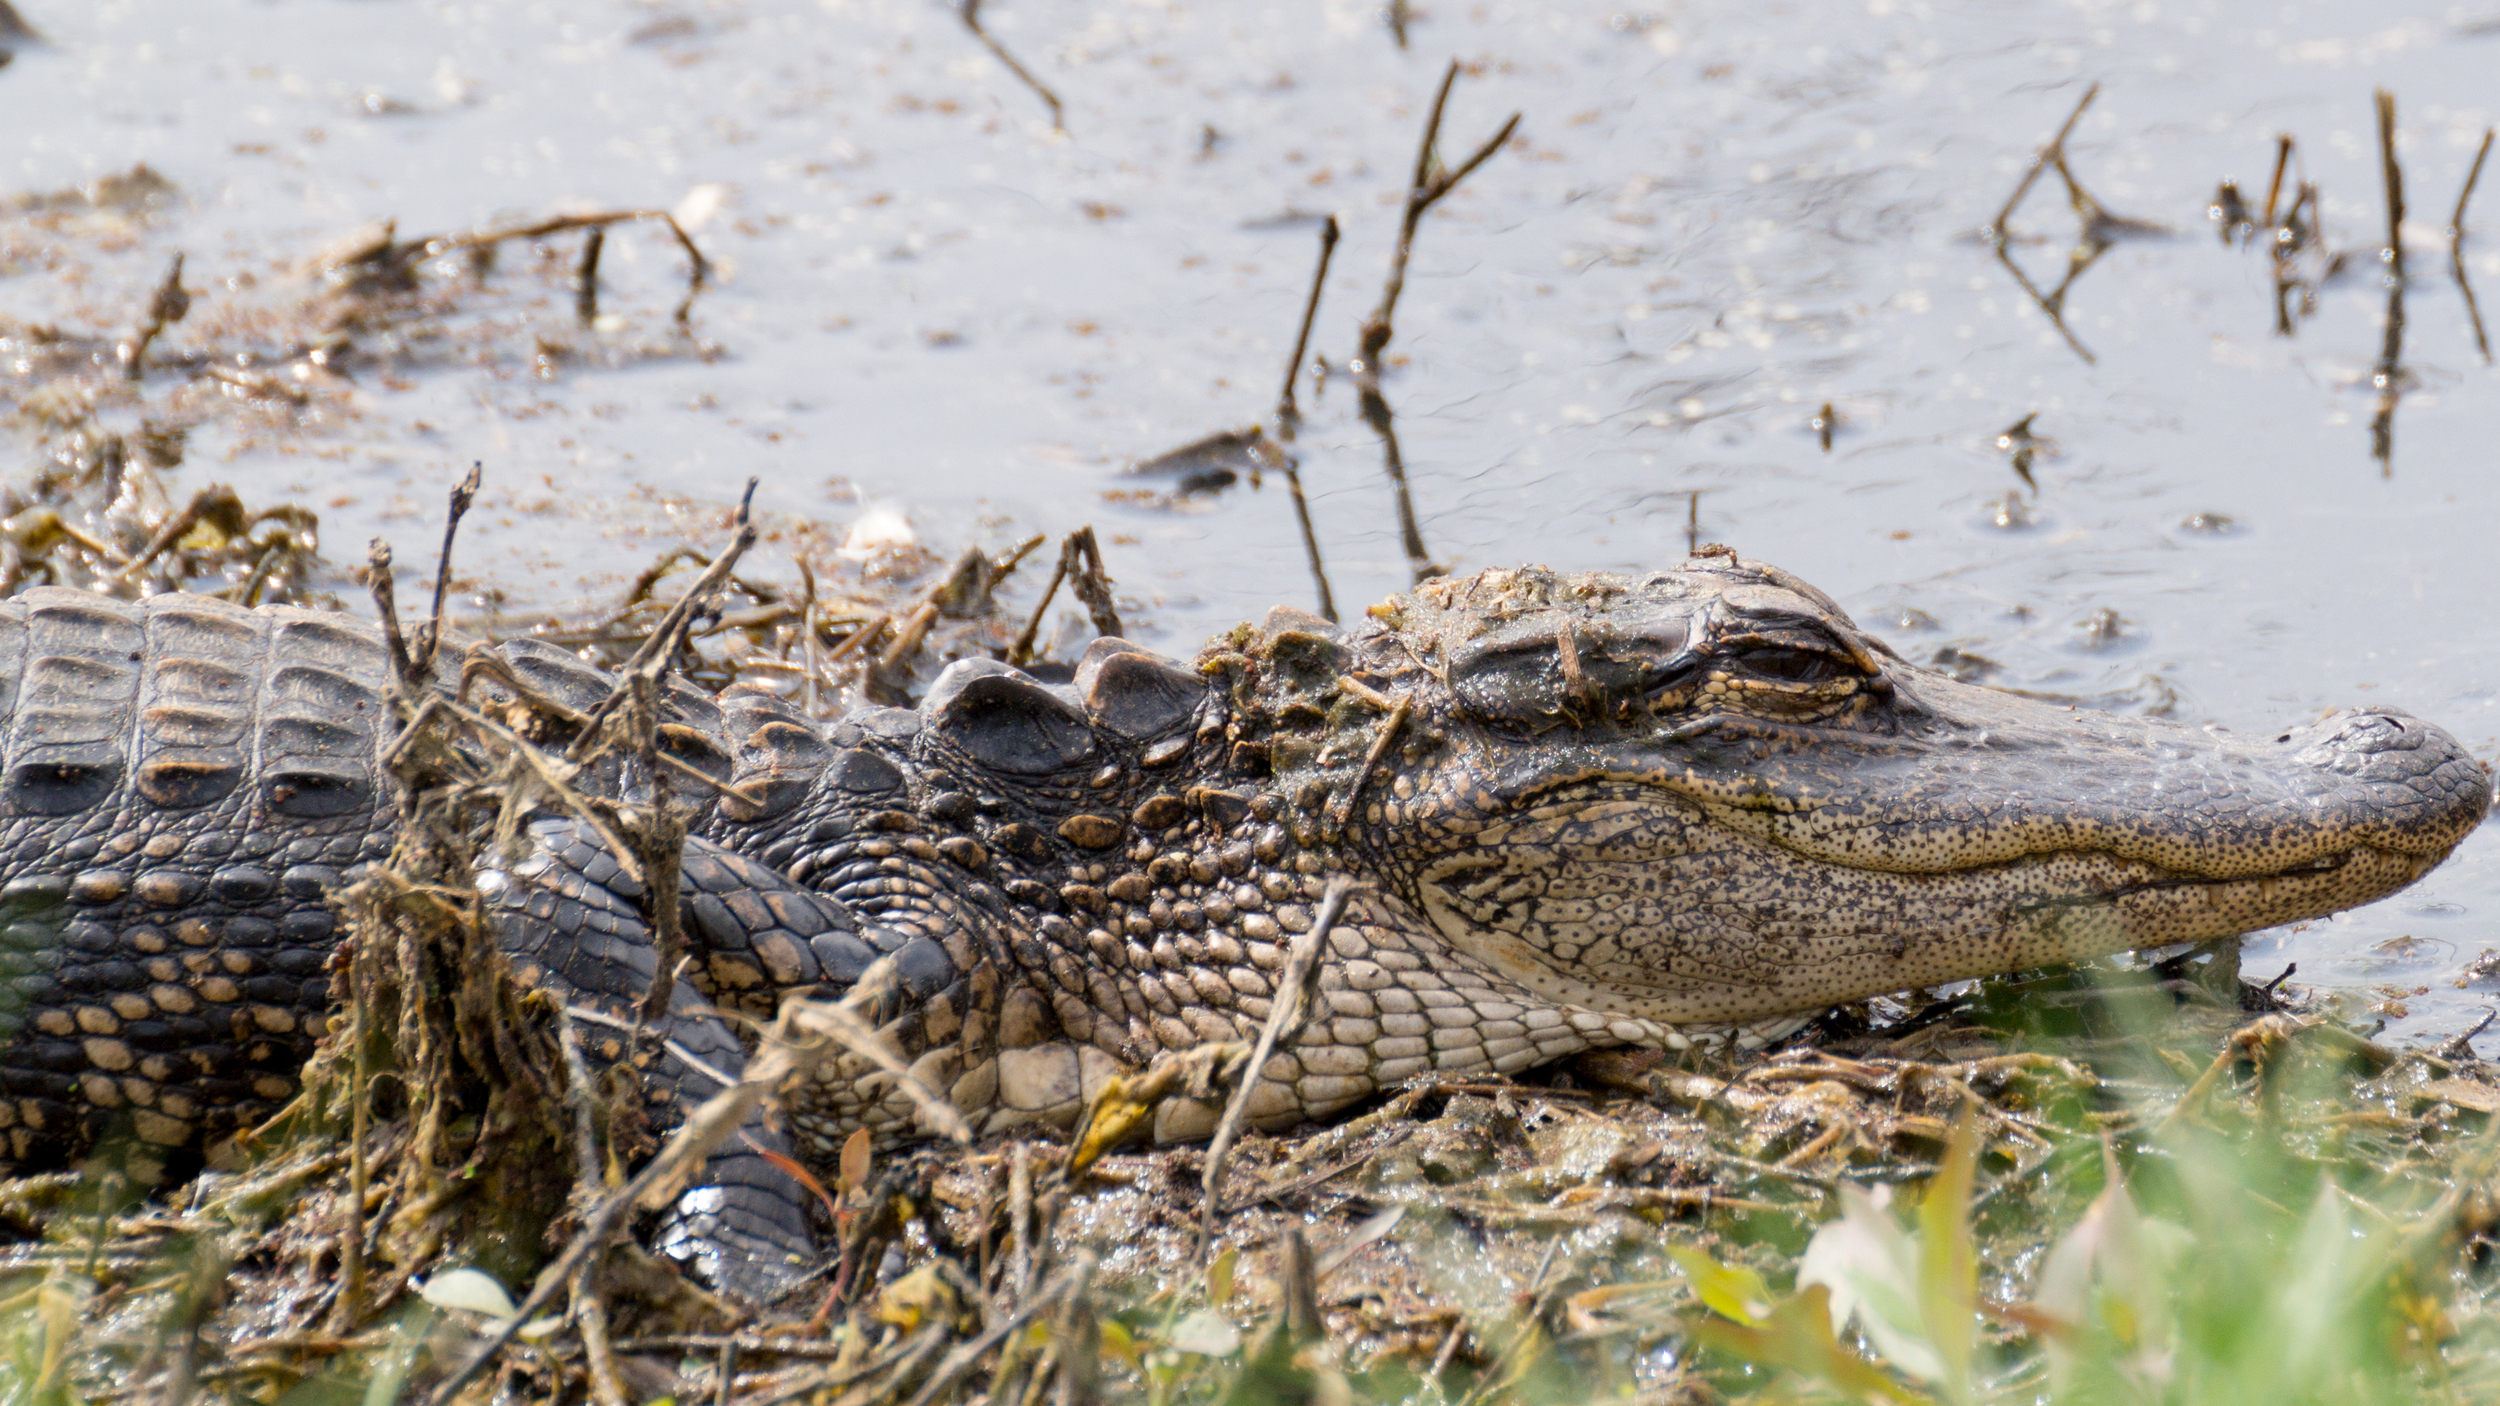 Young alligator crawling through the mud on the shore of a lagoon.